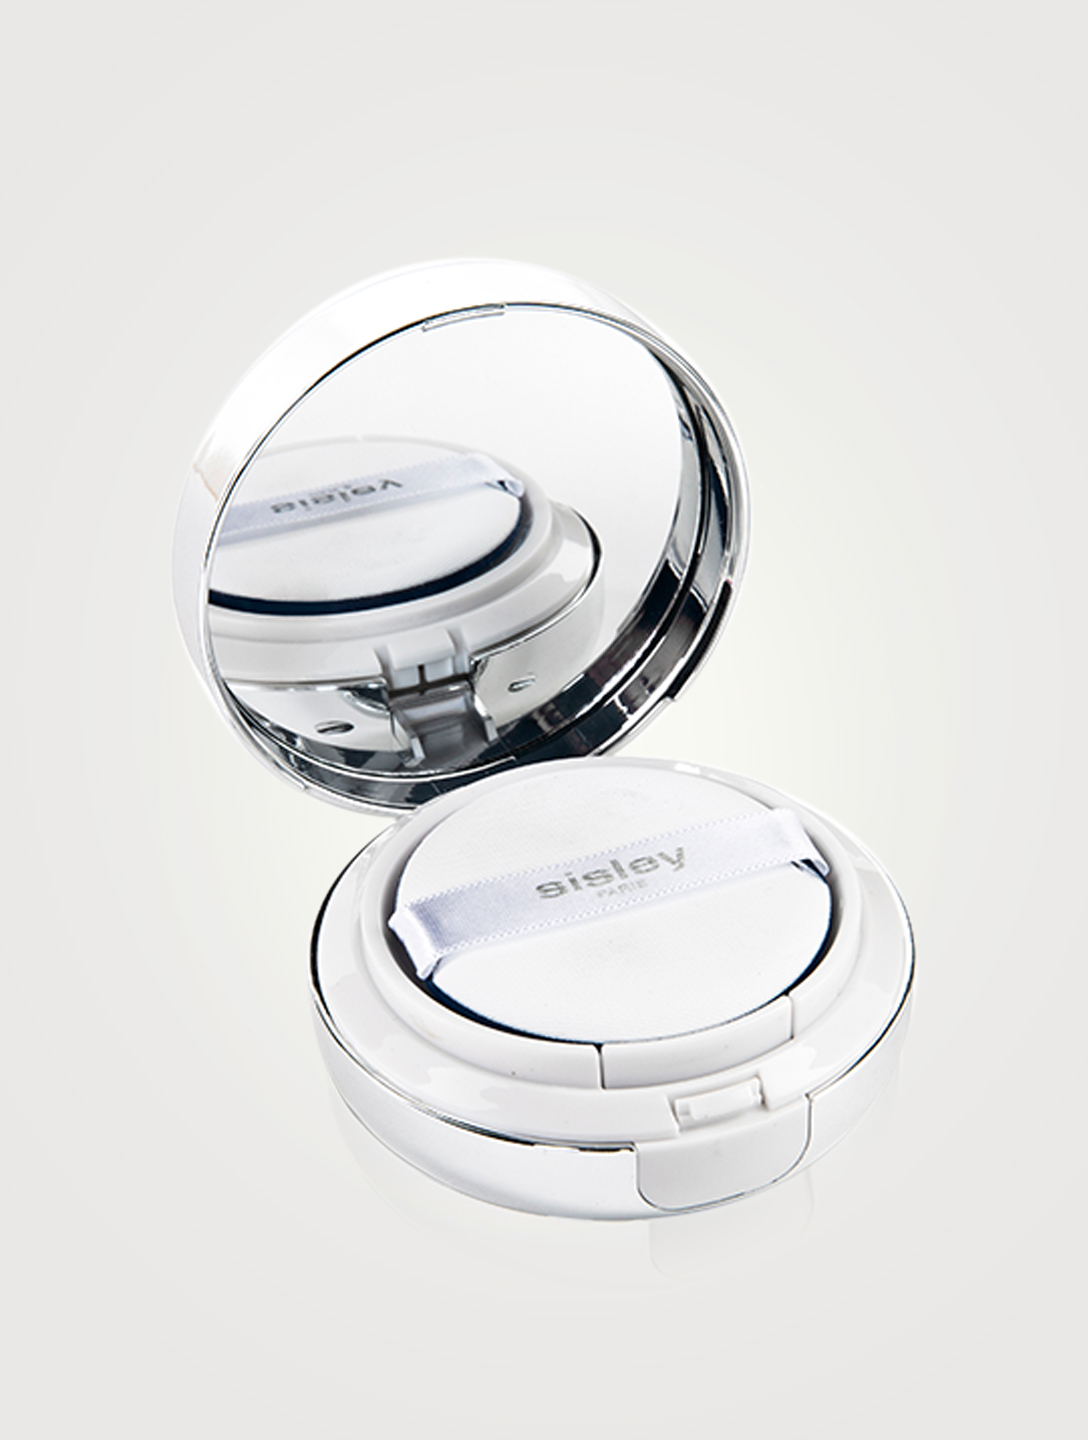 SISLEY-PARIS Phyto-Blanc Cushion Foundation Beauty Neutral